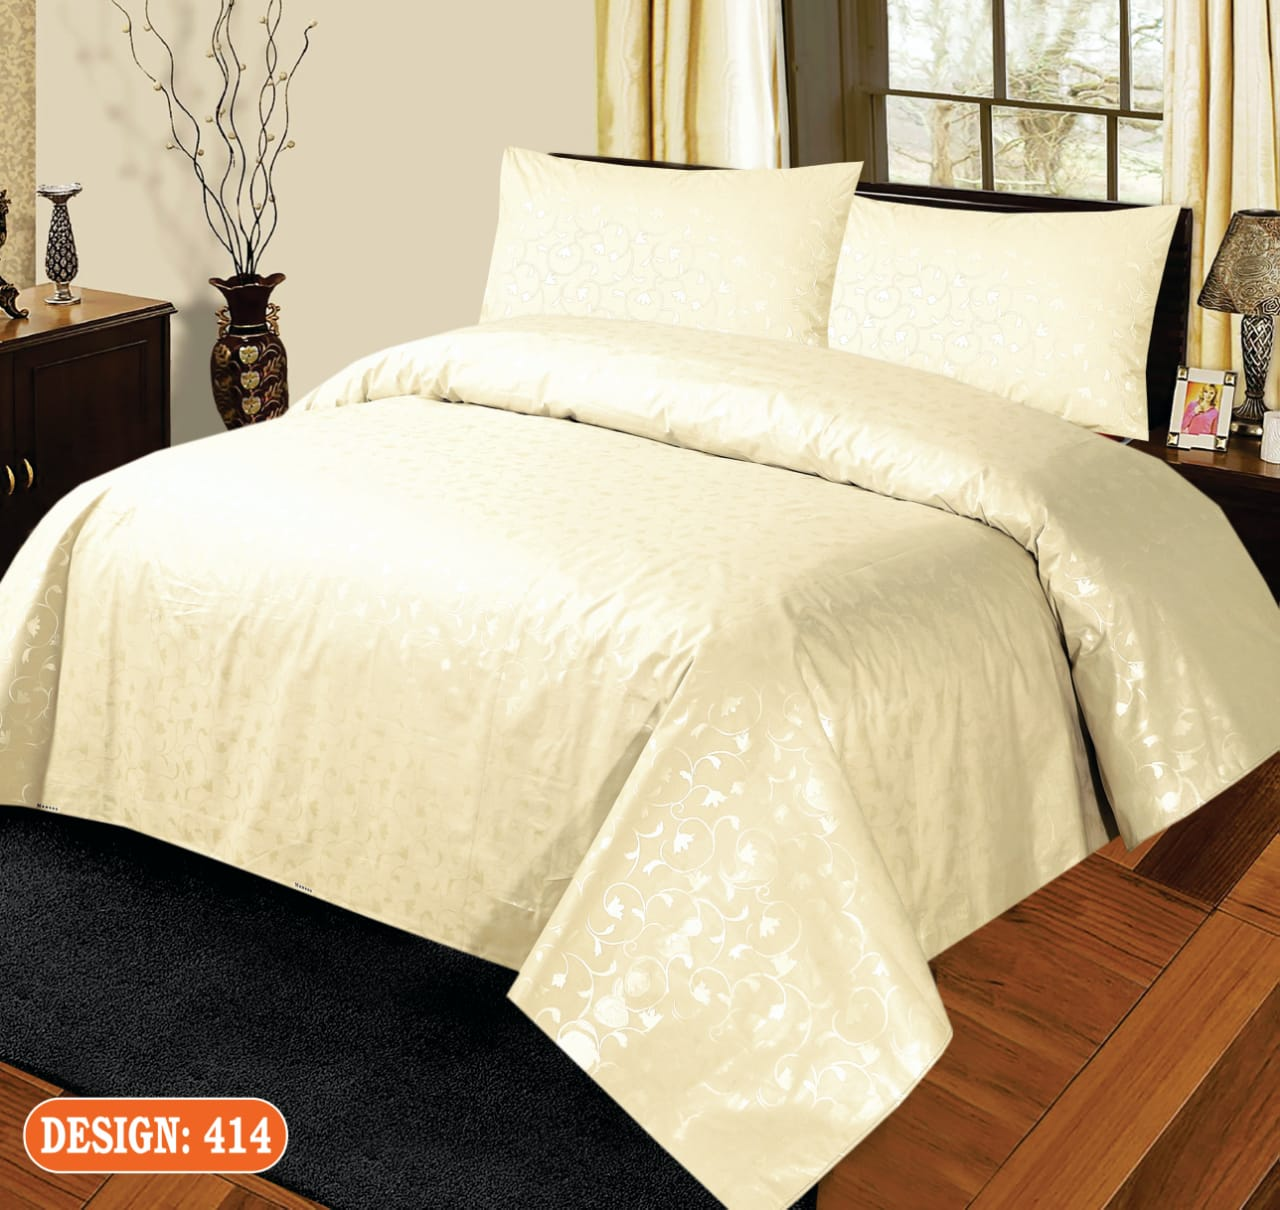 Silk Bed Sheets Online in Pakistan | Printed Cotton & Bridal Bed Sheets